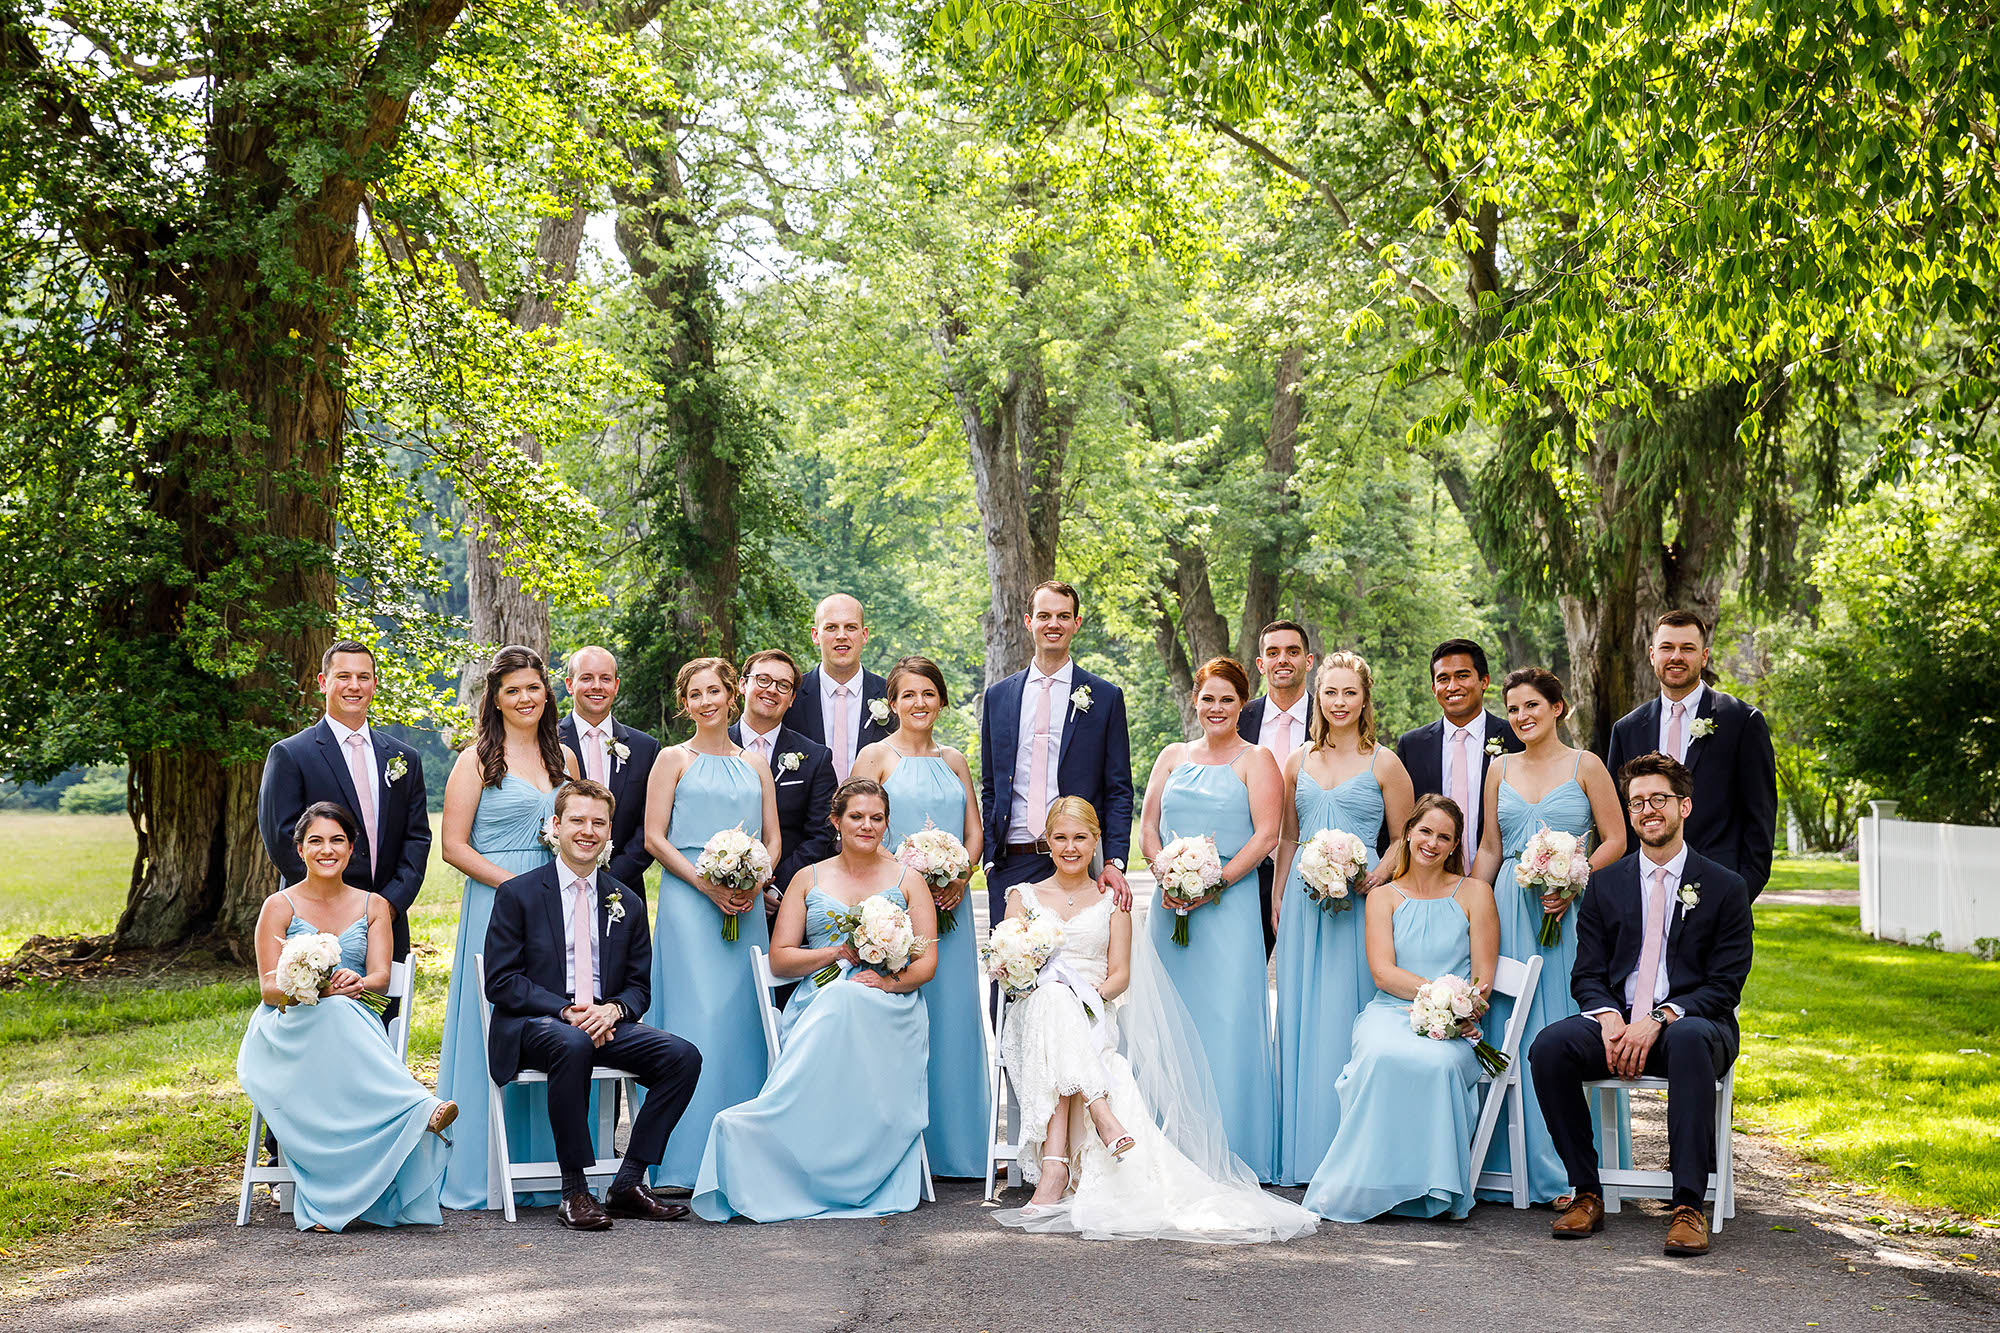 A wedding party sports their light blue gowns and dark blue tuxedos outside on a beautiful, sunny day. Tall oak trees and green grass surround them at The Hunt Club in Gates Mills, Ohio.